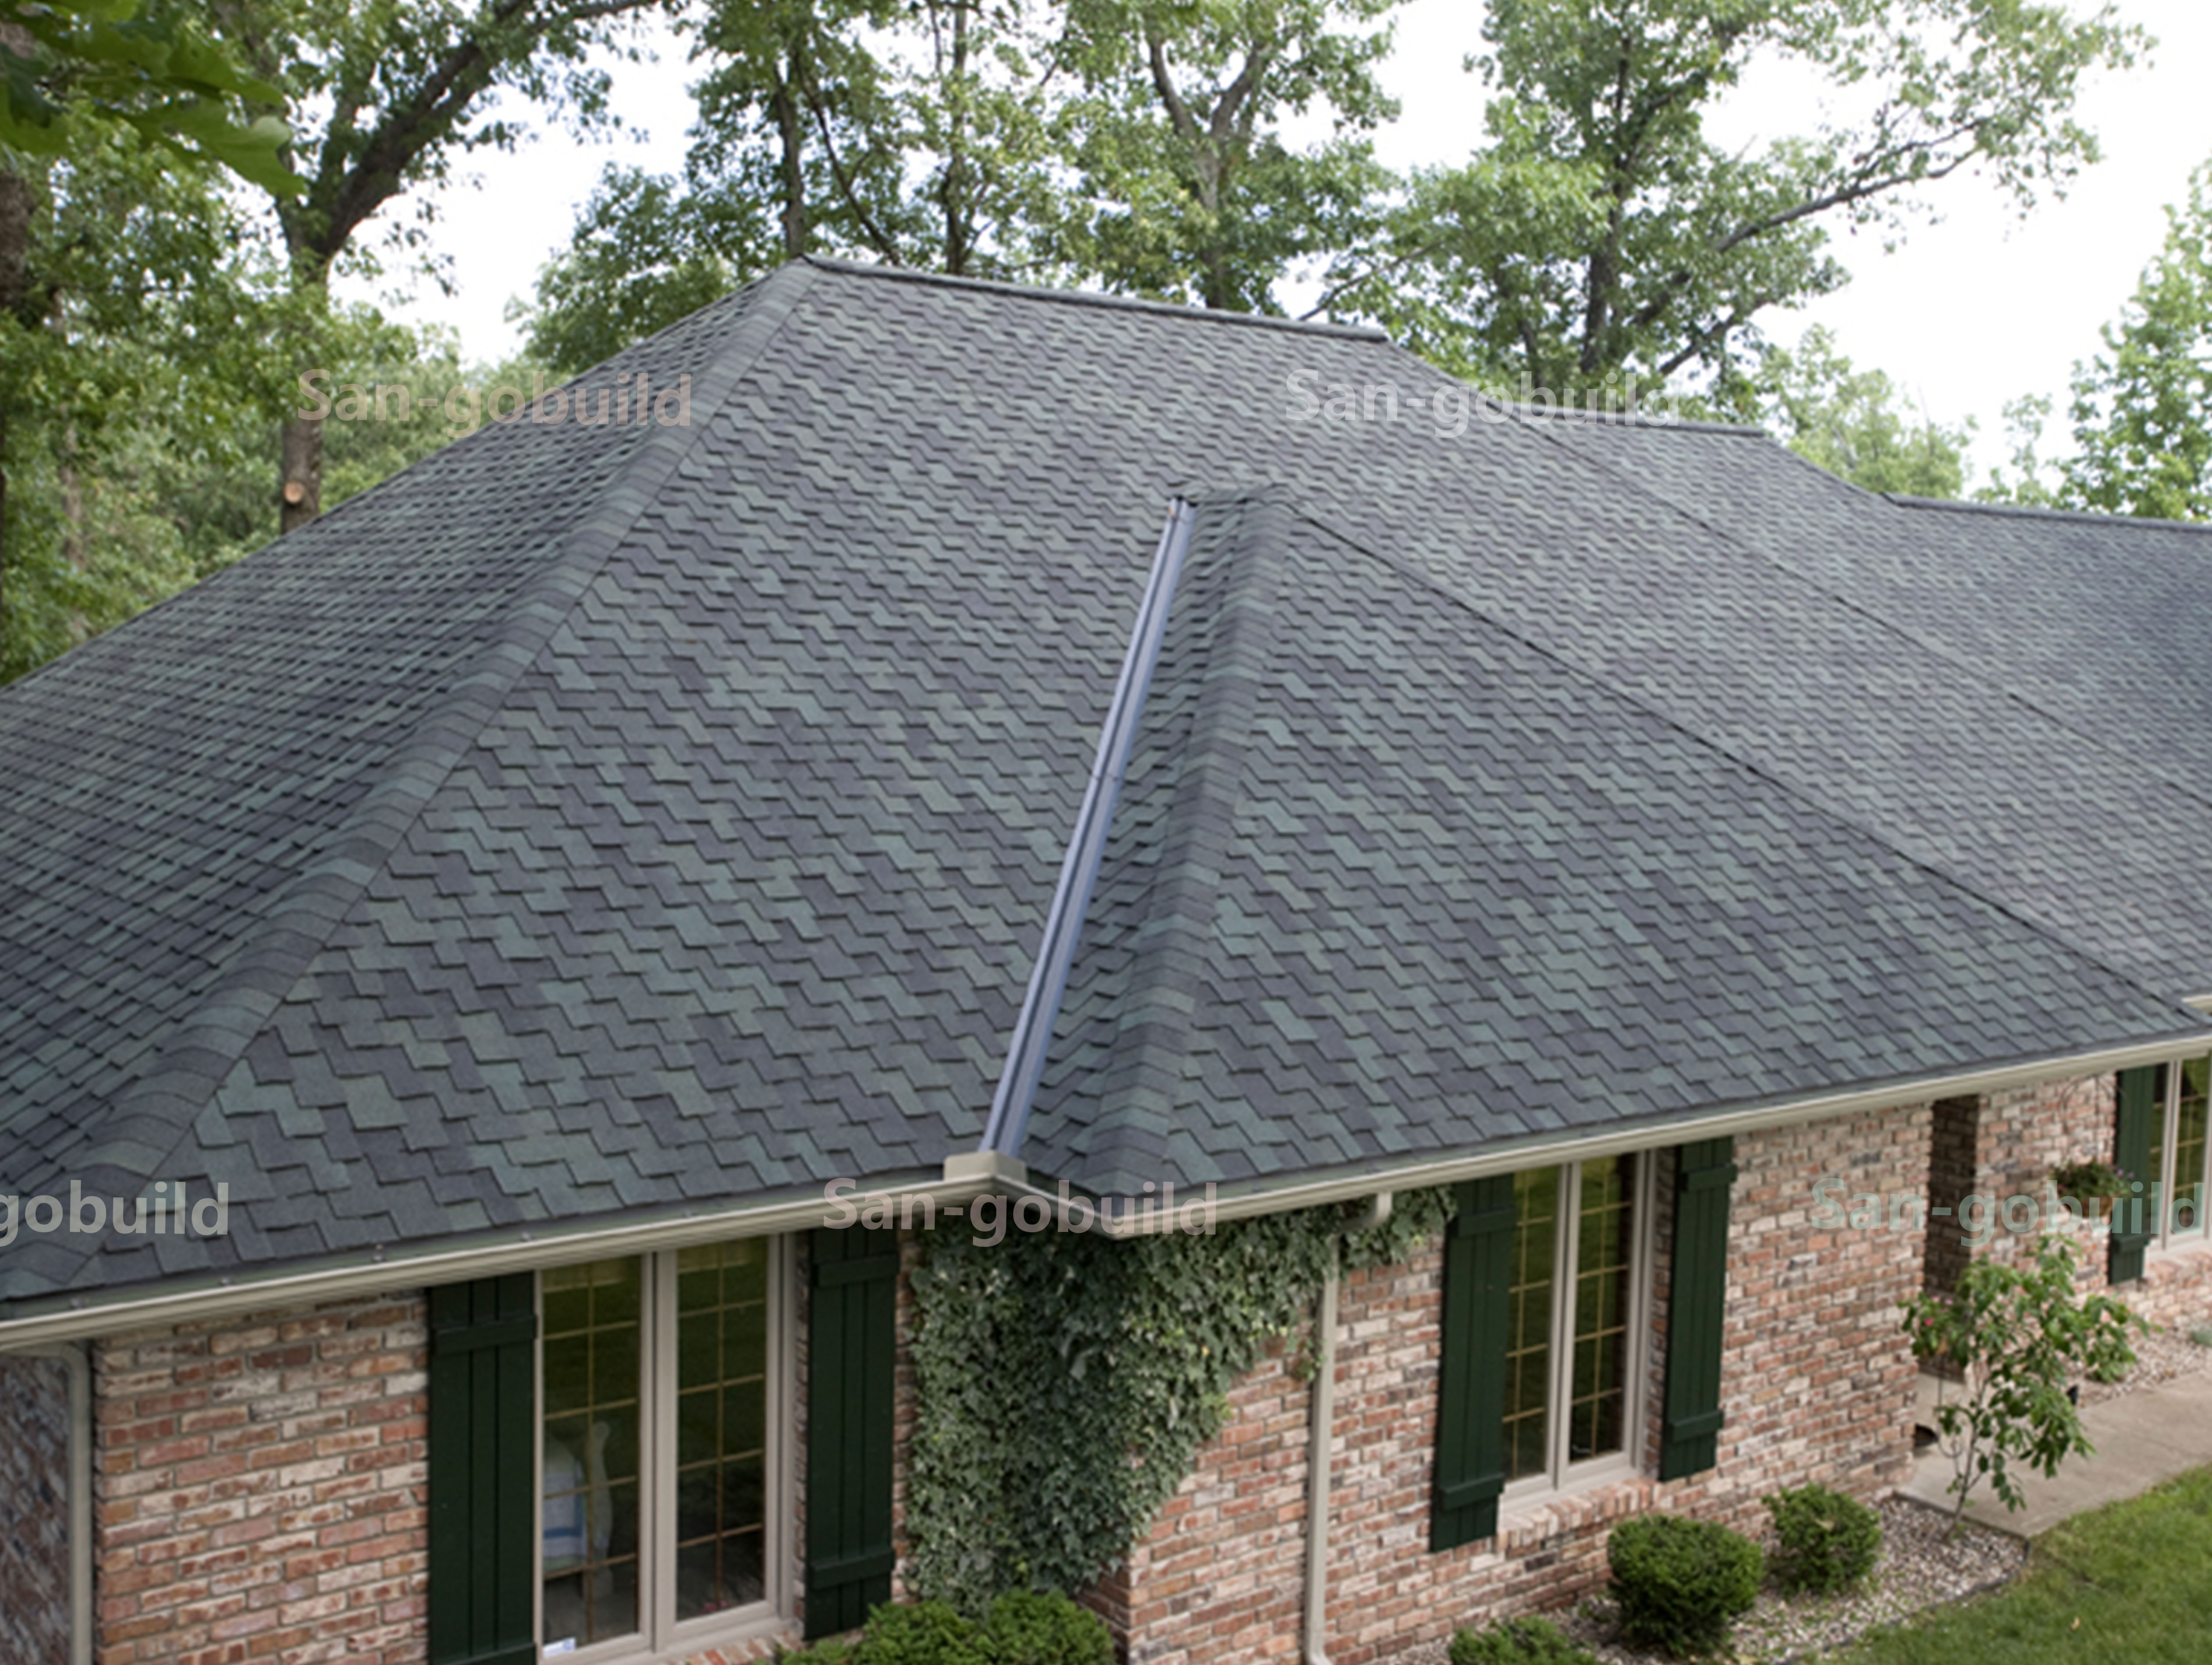 Goethe Asphalt Shingle